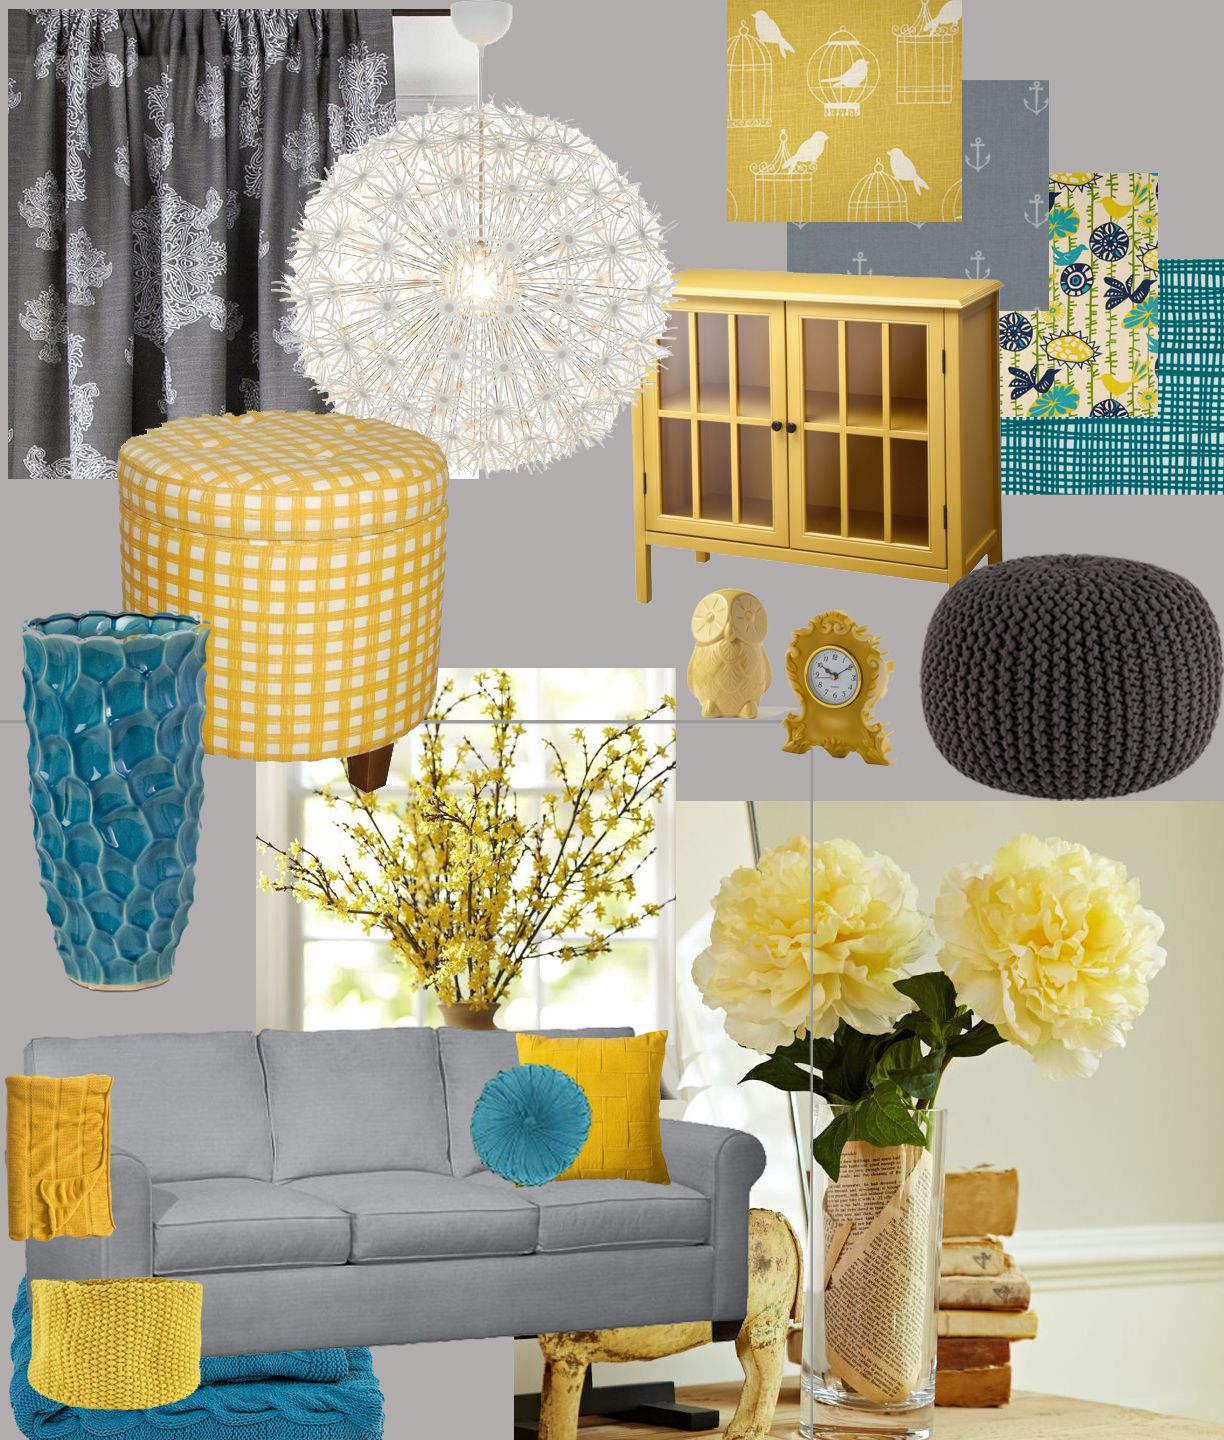 My living room design board yellow teal and grey love the yellow cabinet